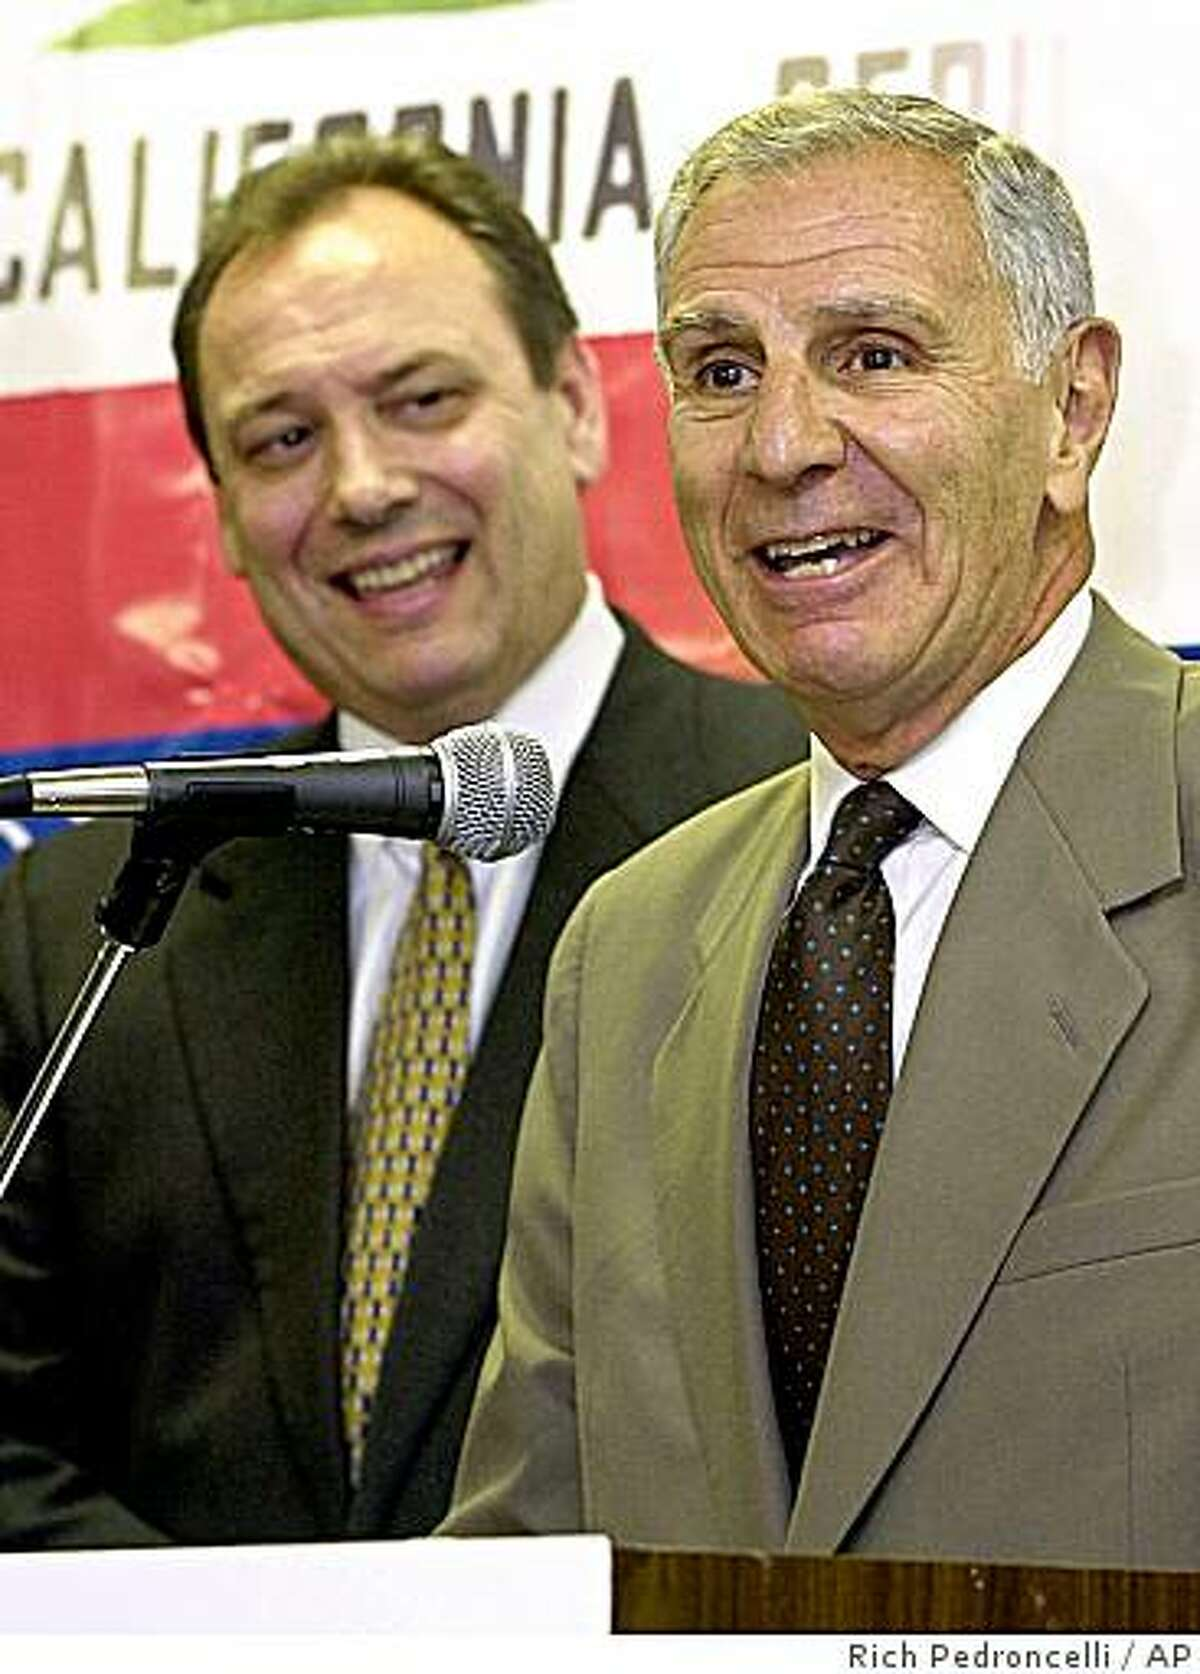 Republican gubernatorial candidate, Secretary of State Bill Jones, left, looks on as former California Gov. George Deukmejian anwers questions during a news conference Wednesday, June 20, 2001, in Sacramento, Calif. It was announced Wednesday that Jones has tapped the former two-term governor to chair his campaign. (AP Photo/Rich Pedroncelli)